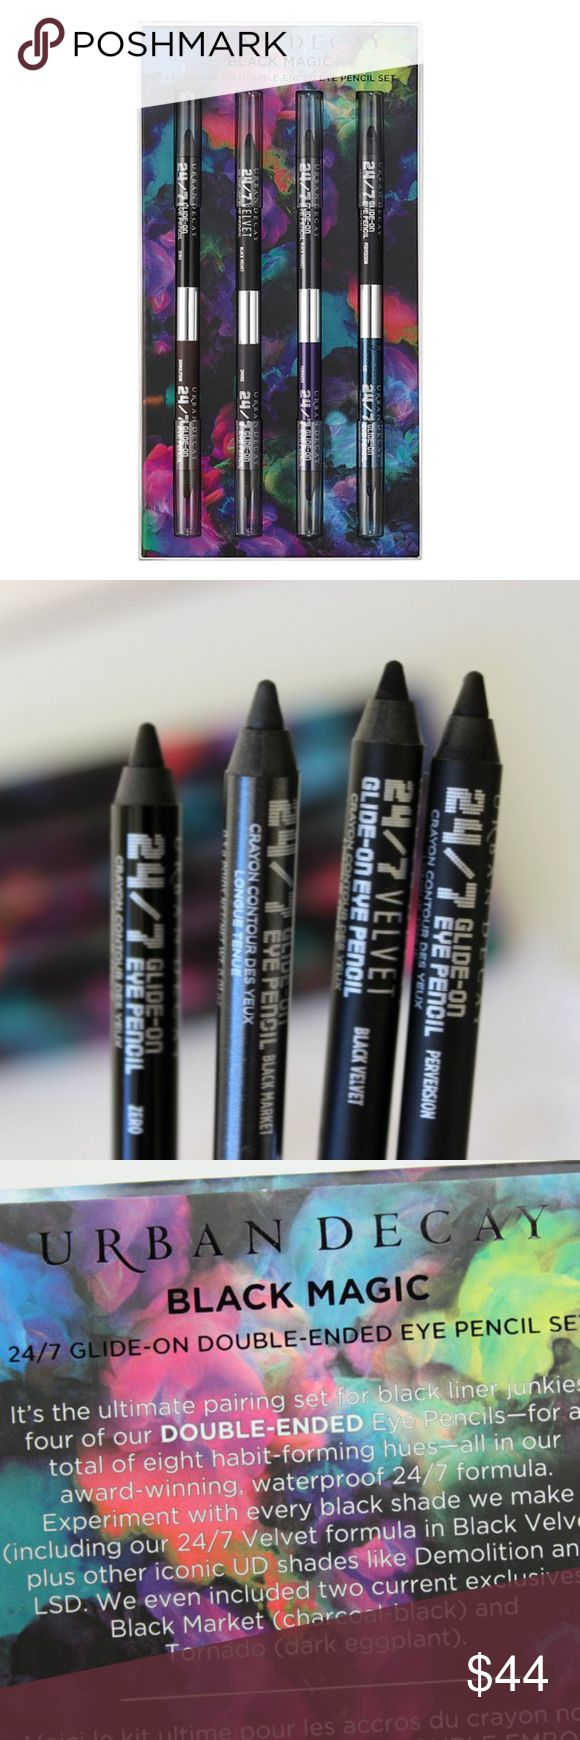 URBAN DECAY BLACK MAGIC EYE PENCIL MAKEUP SET NEW A limited-edition set of four double-ended eyeliners with a black color and a vivid shade in every pencil.  Every double-ended pencil in this set features a black shade on one end and a rich, colorful shade on the other. Line eyes with every black shade from Urban Decay--including 24/7 Velvet formula in Black Velvet--plus other iconic shades like Demolition and LSD. This set brings back two coveted, exclusive shades: Market (charcoal-black)…